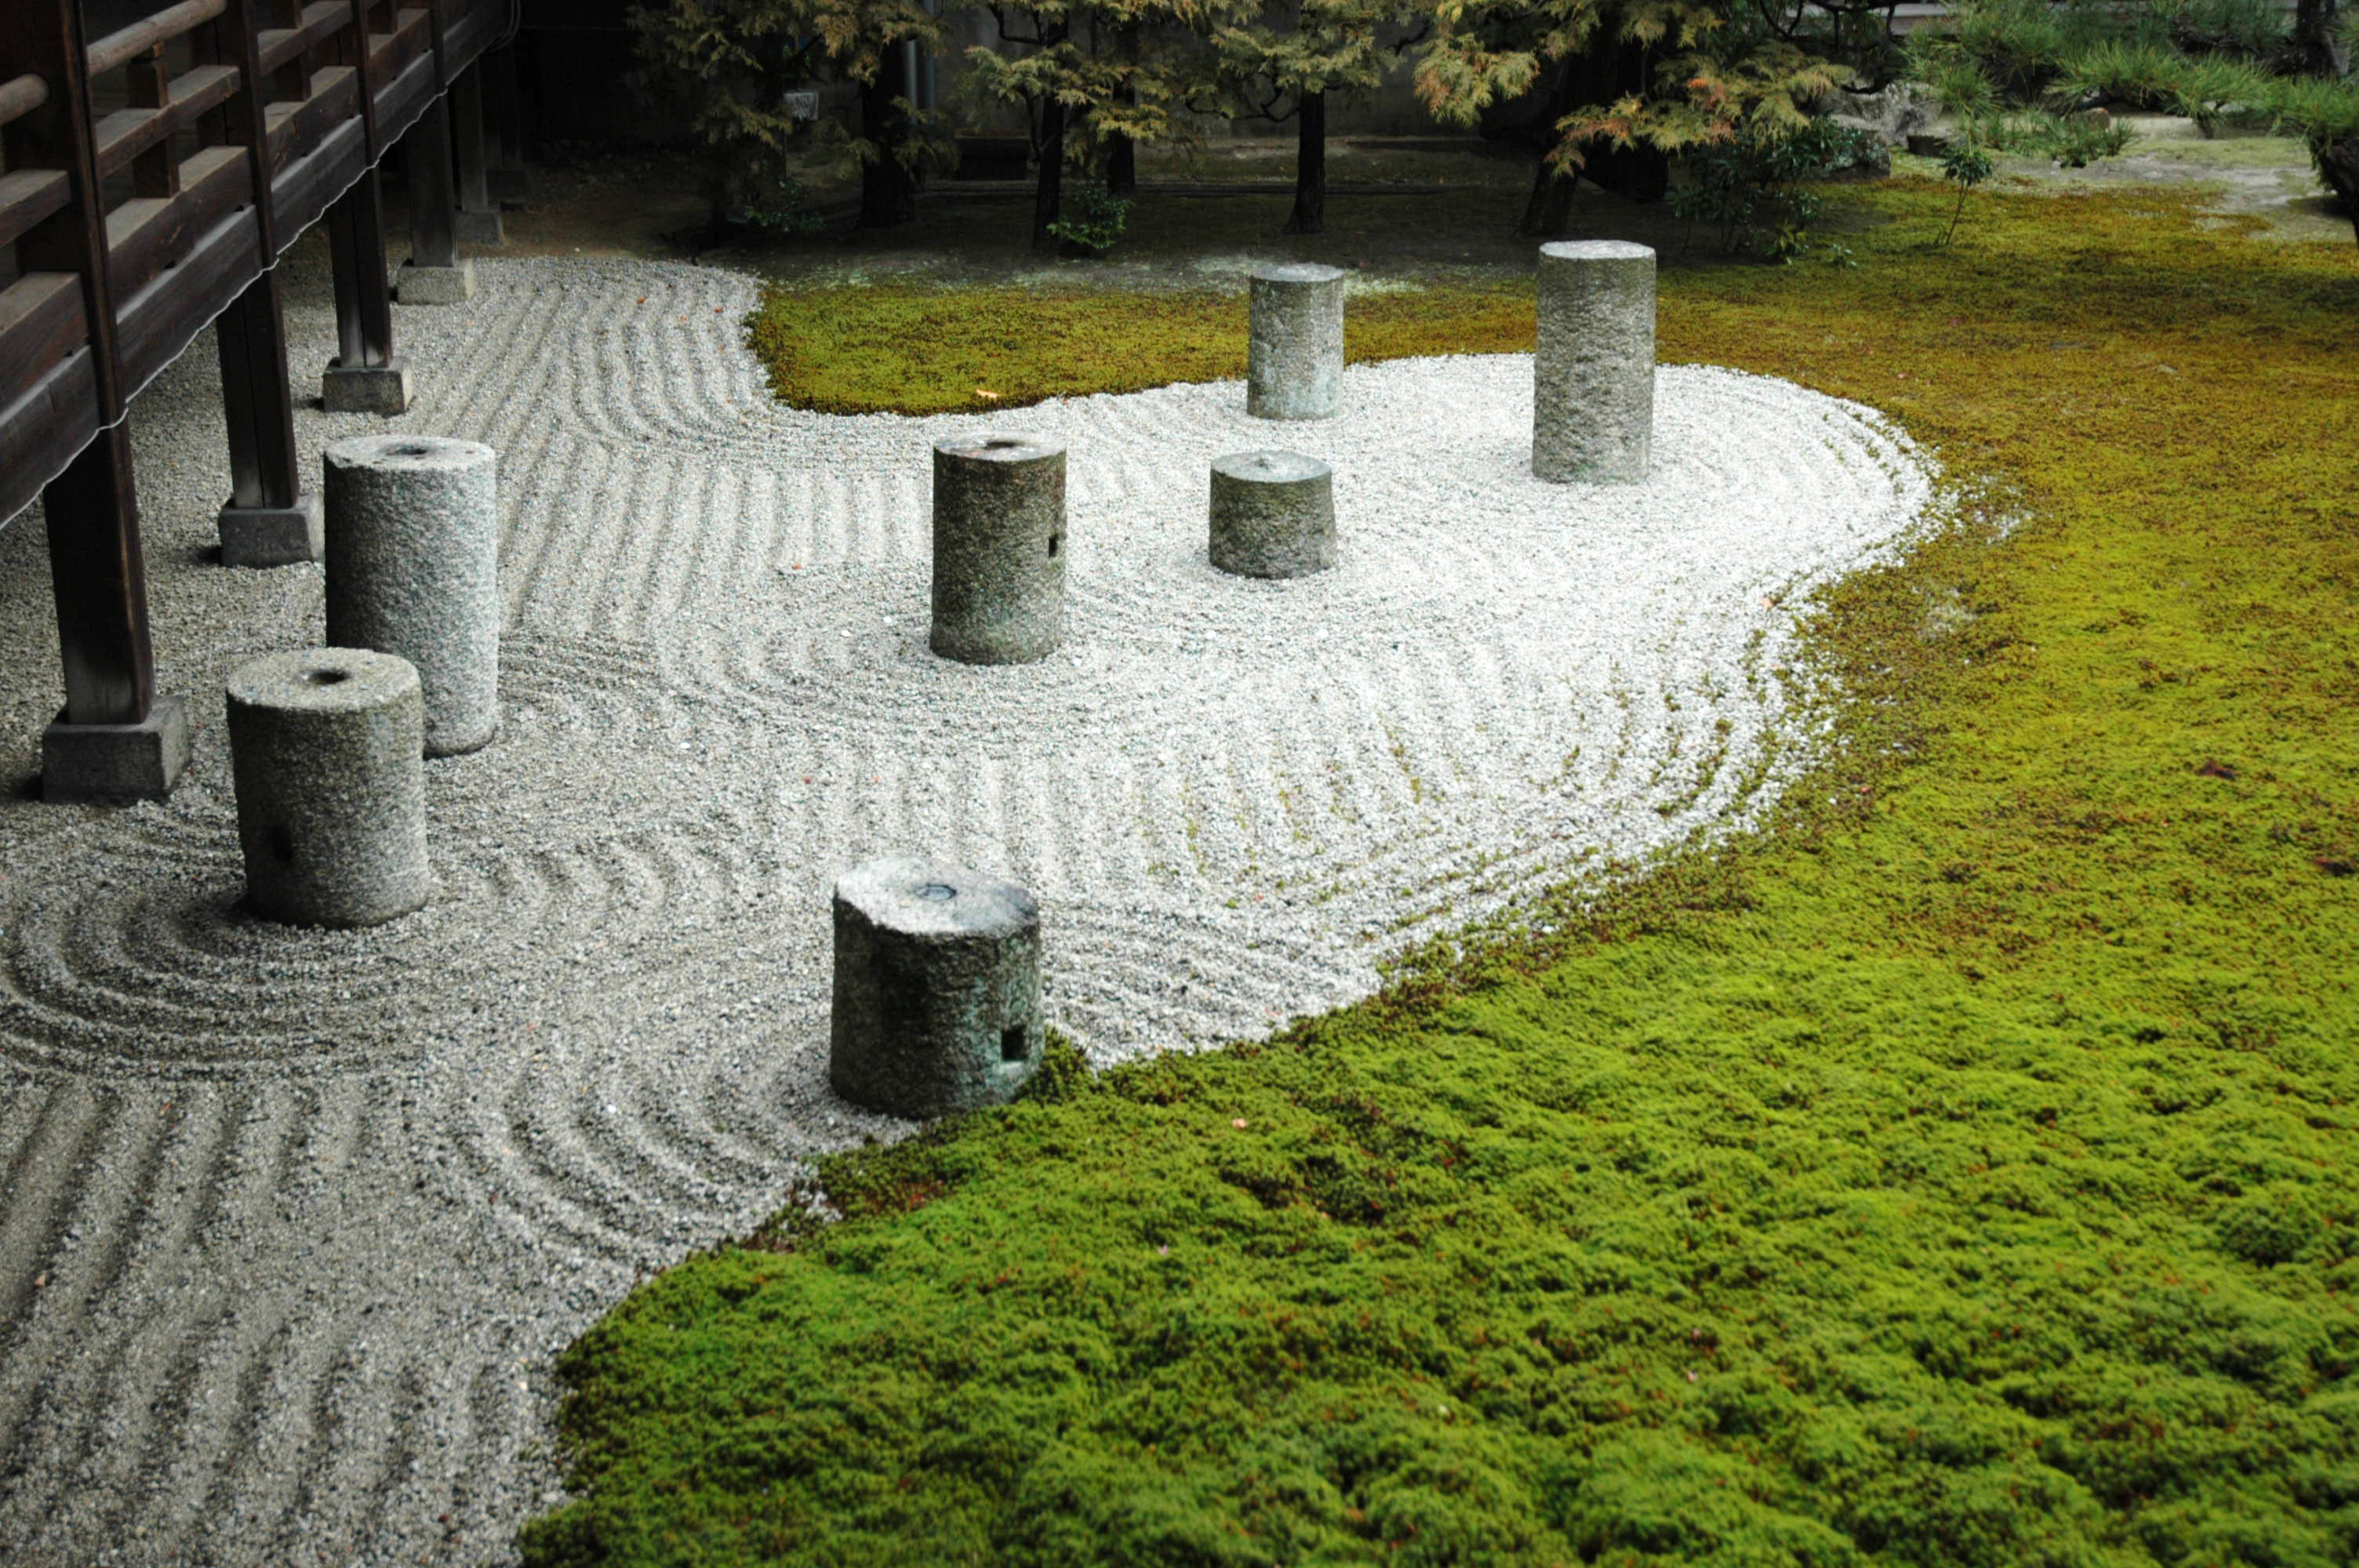 'The Garden of the Septentrions' in Tofukiji Temple's The Garden of the Hojo in Kyoto, landscaped by Mirei Shigemori (1939).